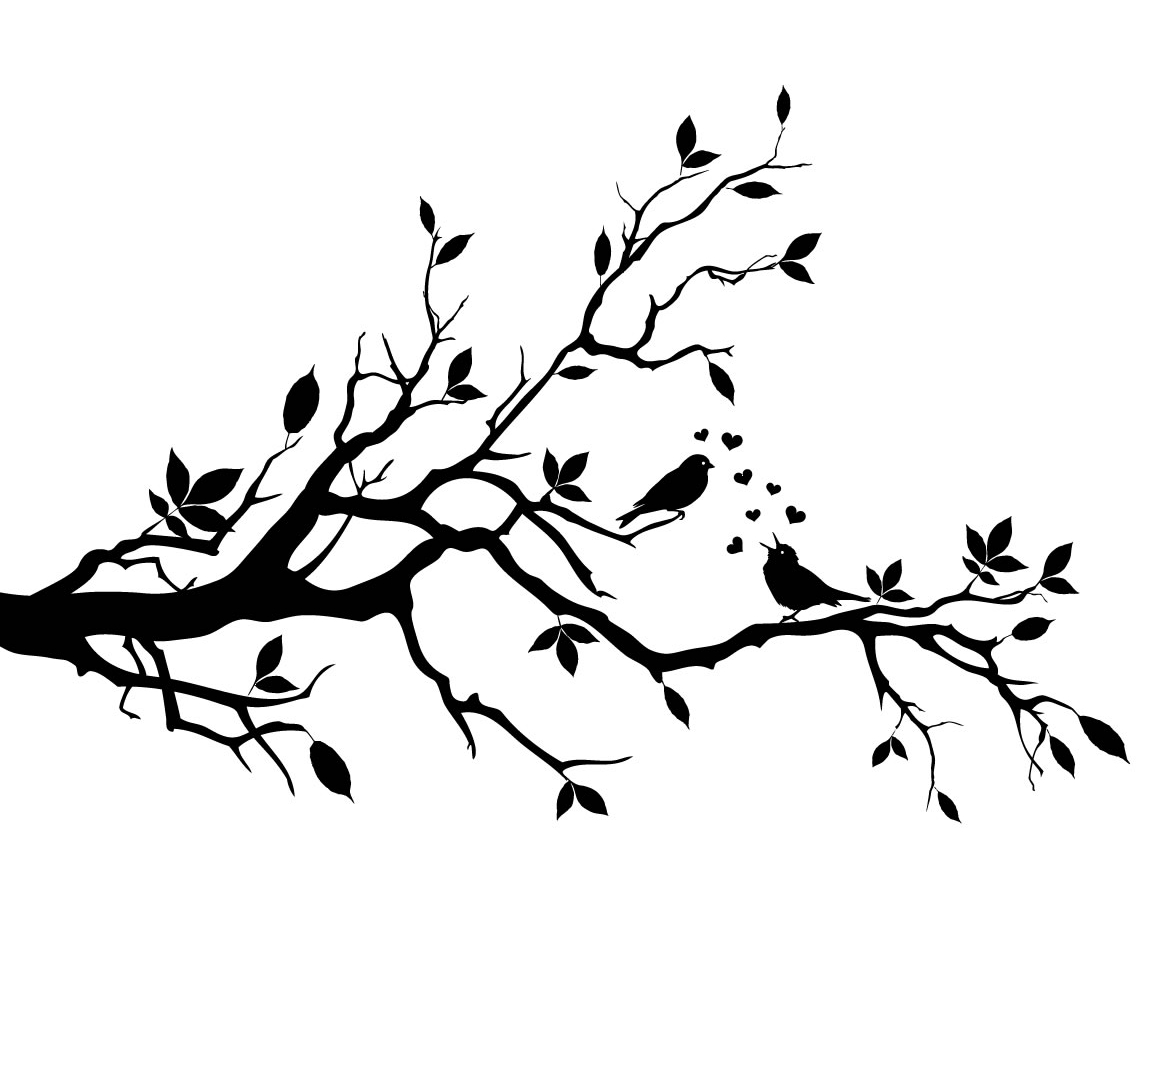 1160x1081 Silhouette Love Birds